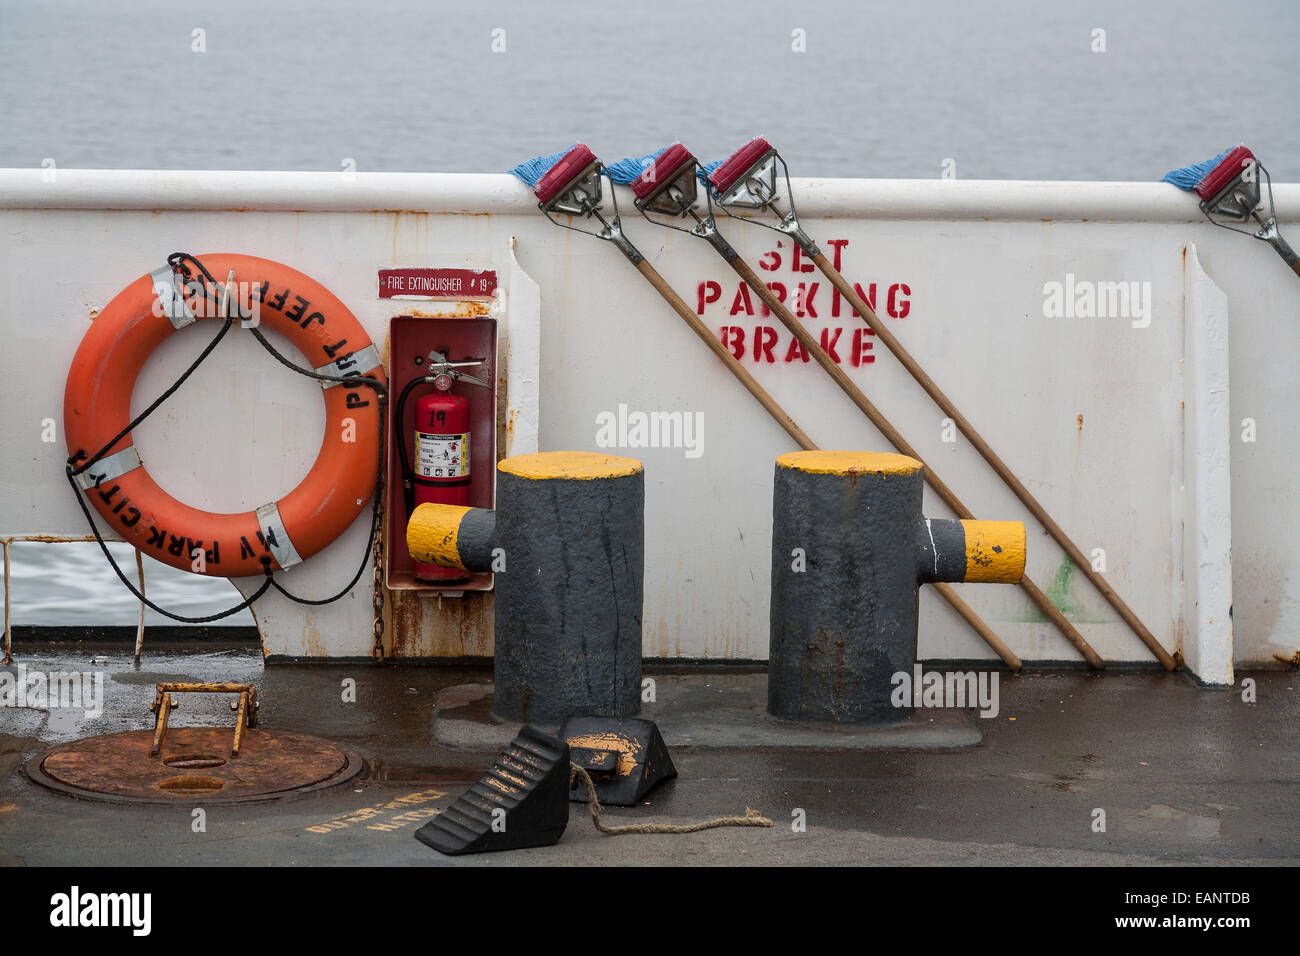 Mops and deck equipment on Port Jefferson to Bridgeport ferry - Stock Image